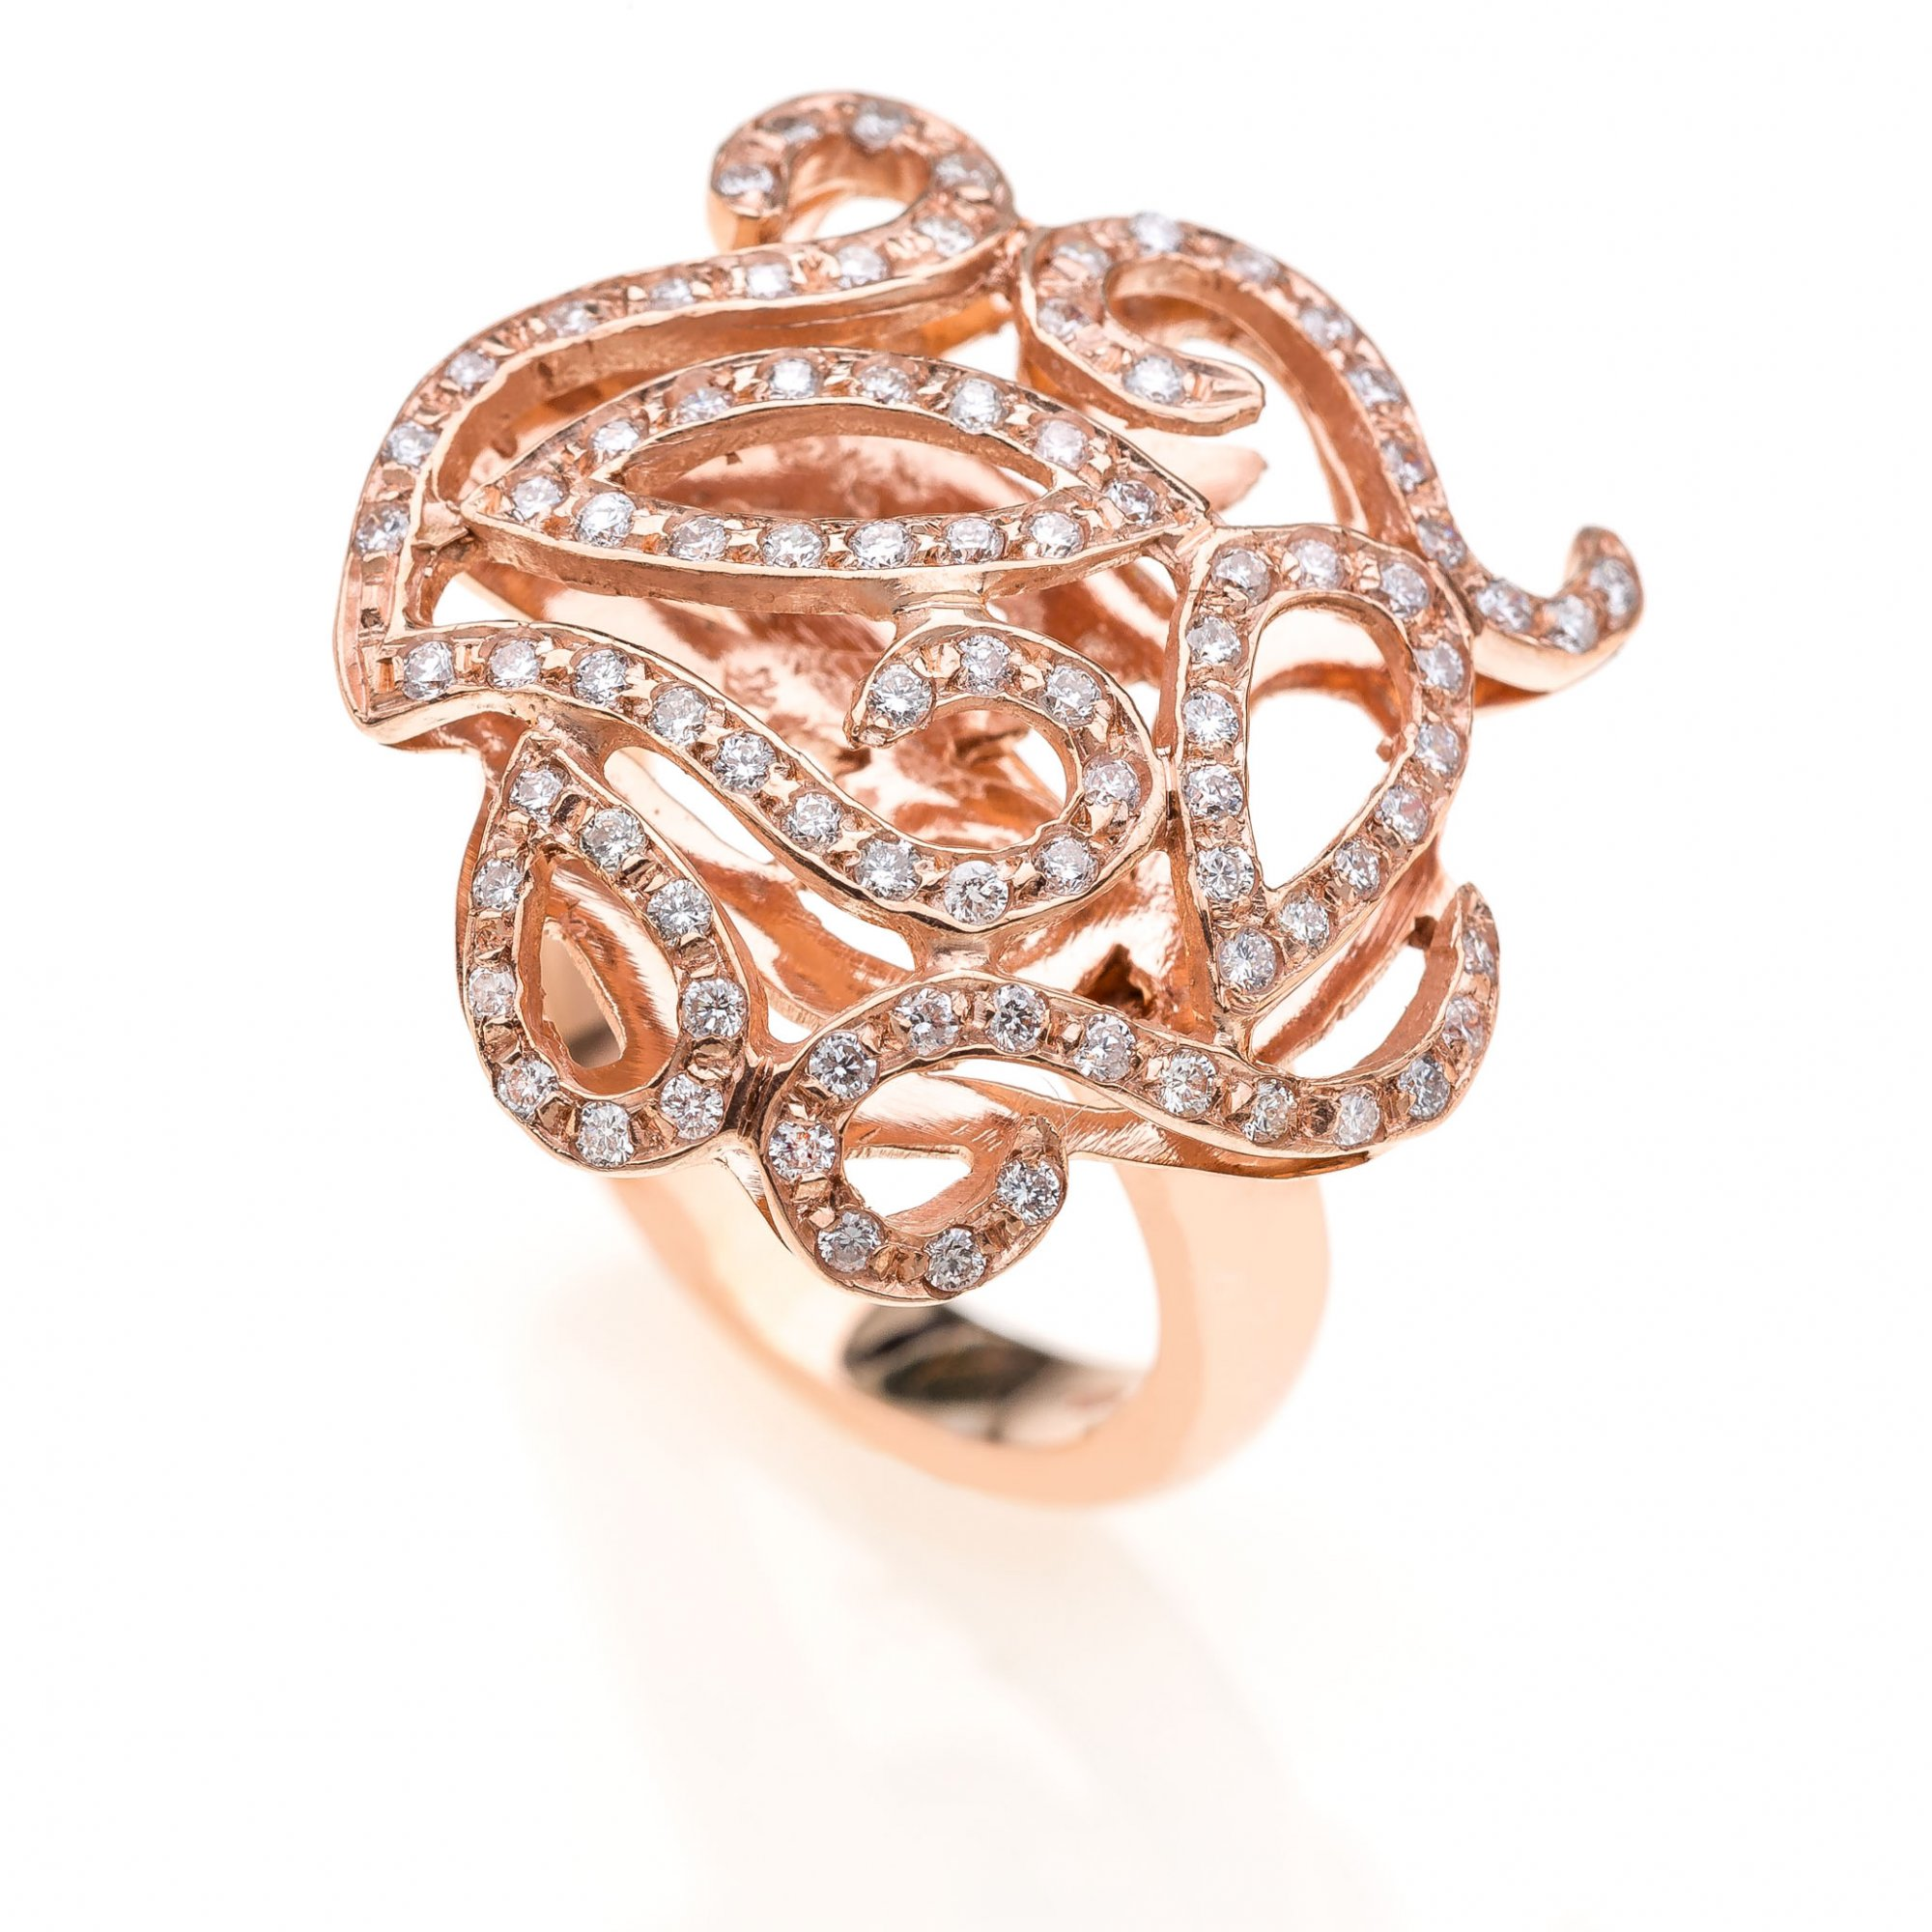 18 KT pink gold with round brilliant cut diamonds ct.0.90 VS H color